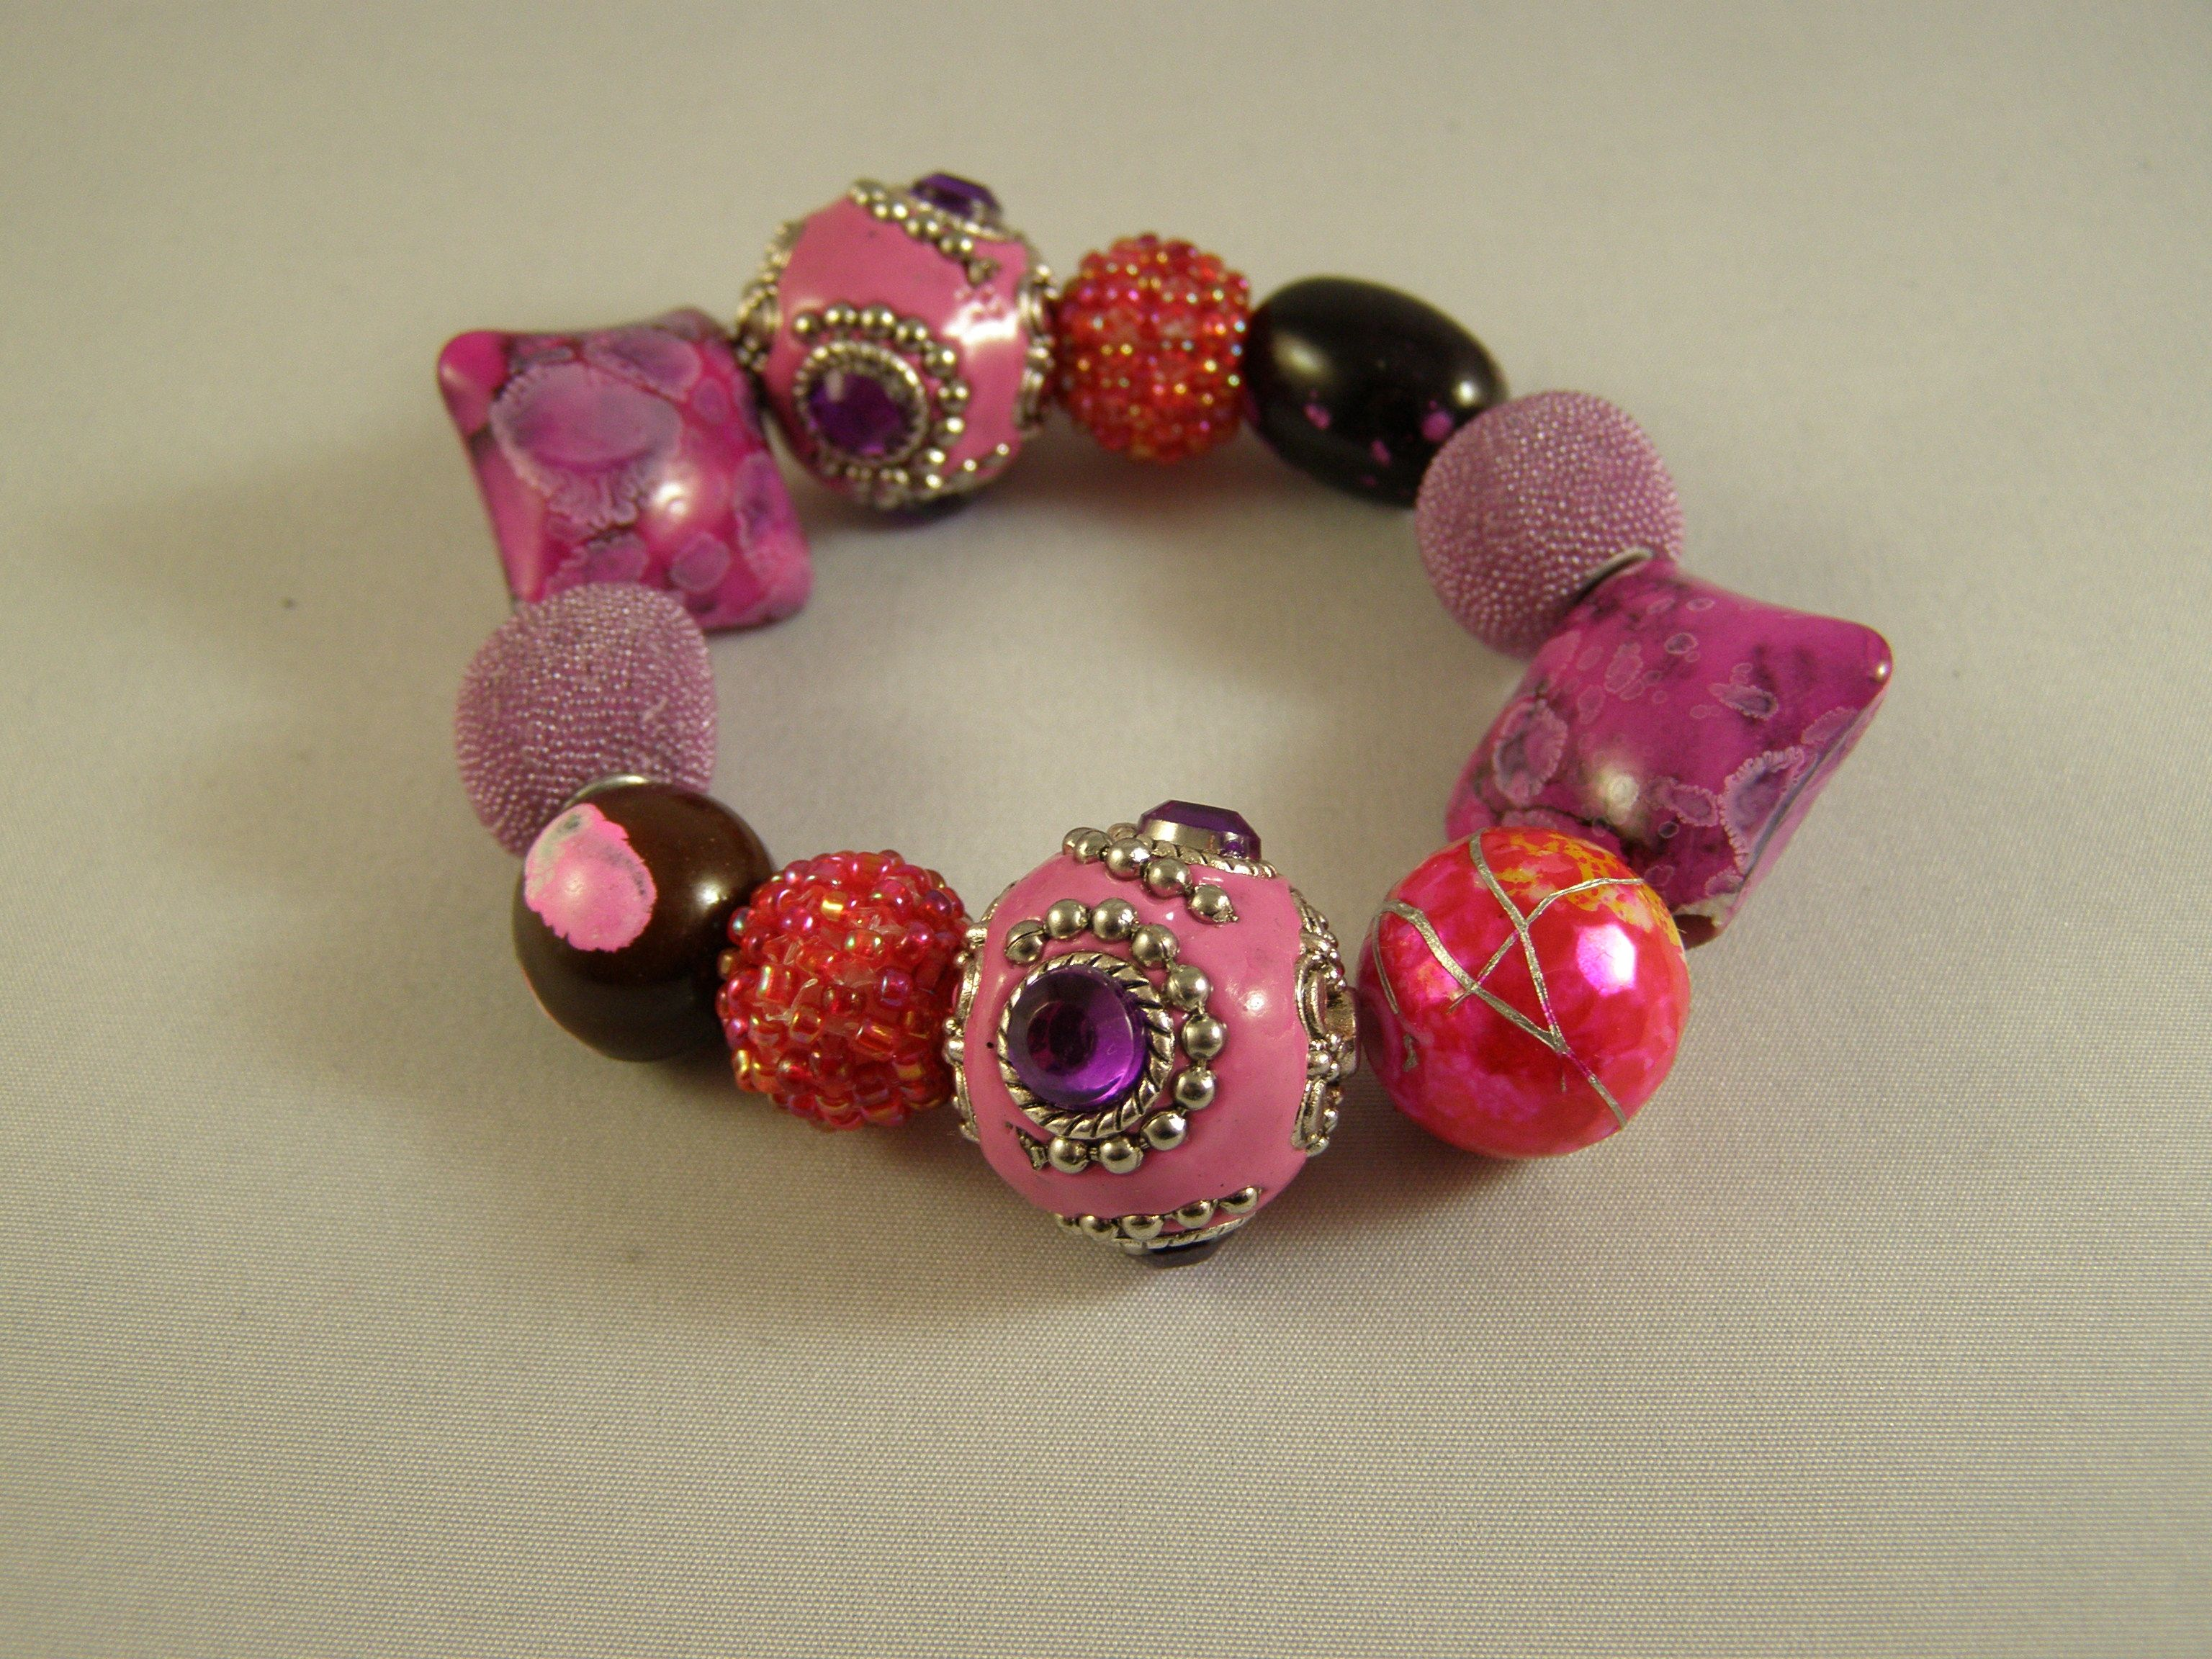 Design by Terry Matuszyk , Pink Chapeau Vintage Jewelry,for Bead Soup 7.  Most of the beads  supplied by Natalie Moten.